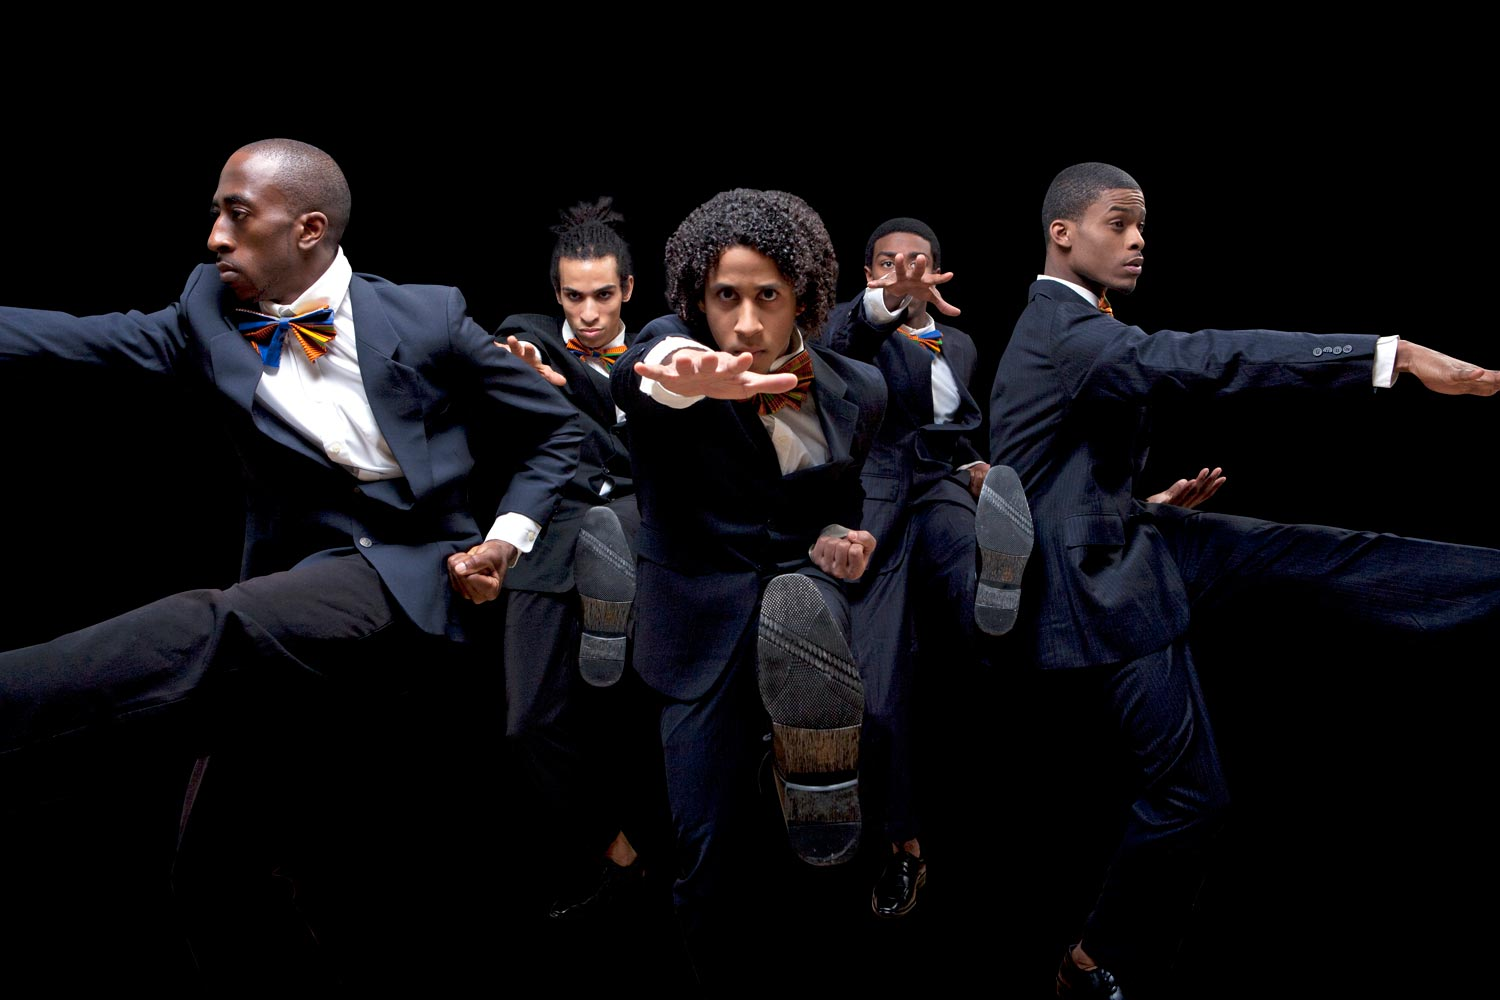 """In """"The Opulence of Integrity,"""" choreographer Christal Brown includes elements of boxing, hip-hop, martial arts, modern dance and theater to illuminate the life of Muhammed Ali. (Photo by Robert Mayer Riccardo Valentine)"""